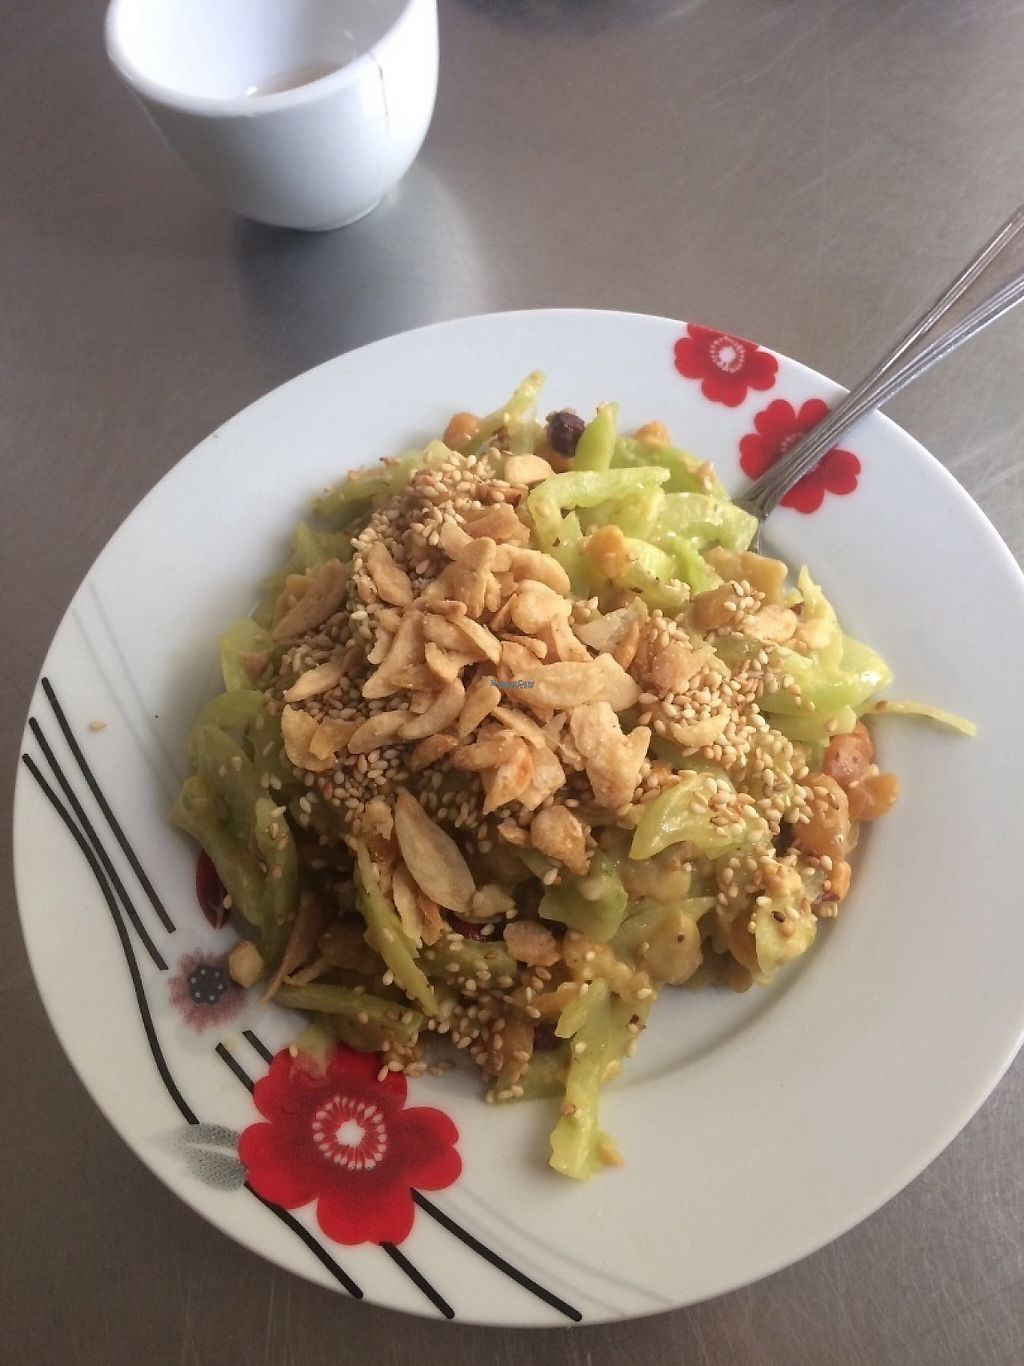 "Photo of Pan Cherry Noodle House & Cafe  by <a href=""/members/profile/Cyclinggal"">Cyclinggal</a> <br/>Tomato salad <br/> April 14, 2017  - <a href='/contact/abuse/image/90240/247728'>Report</a>"